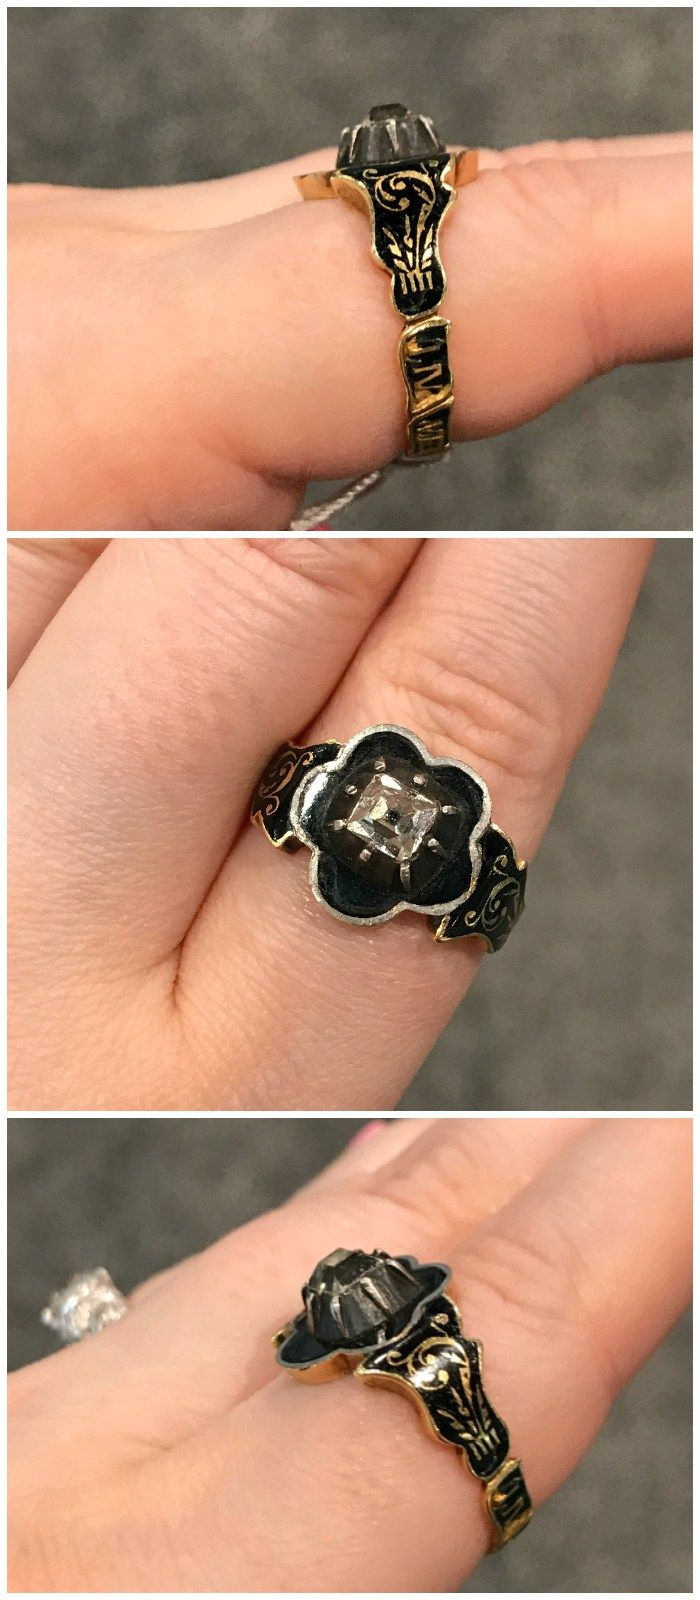 A spectacular, unusual antique mourning ring with a table cut diamond. From Platt Boutique.